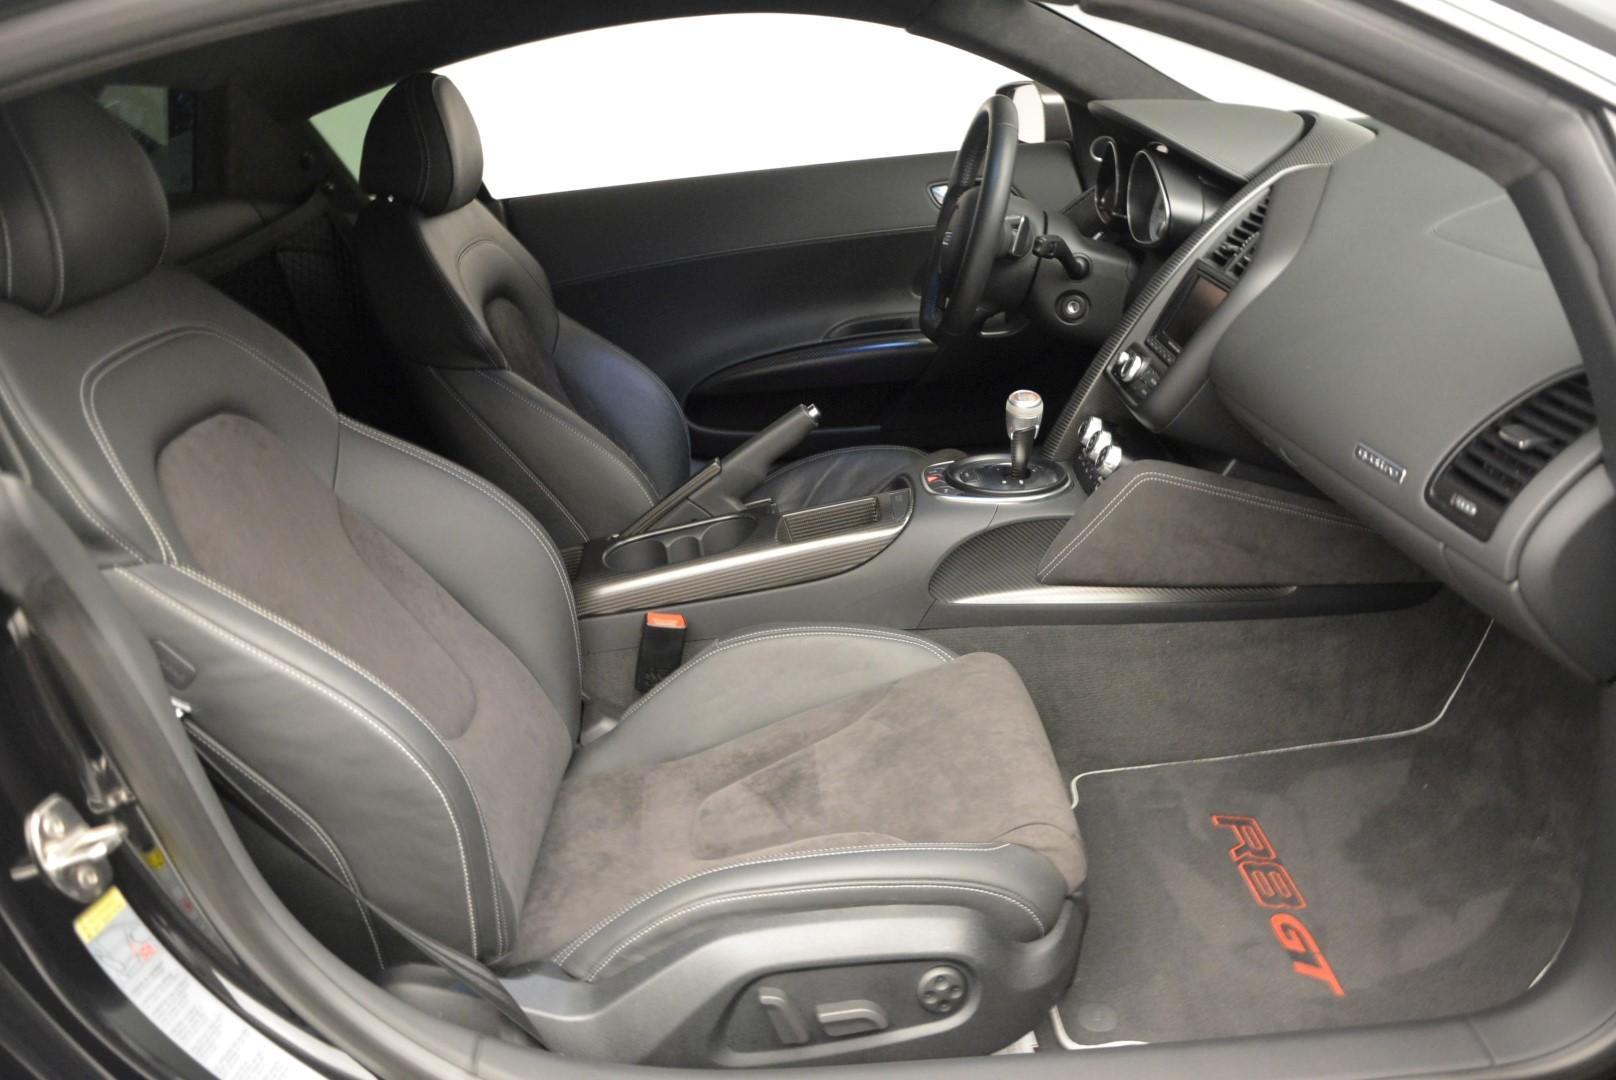 Used 2012 Audi R8 GT (R tronic) For Sale In Greenwich, CT 115_p17